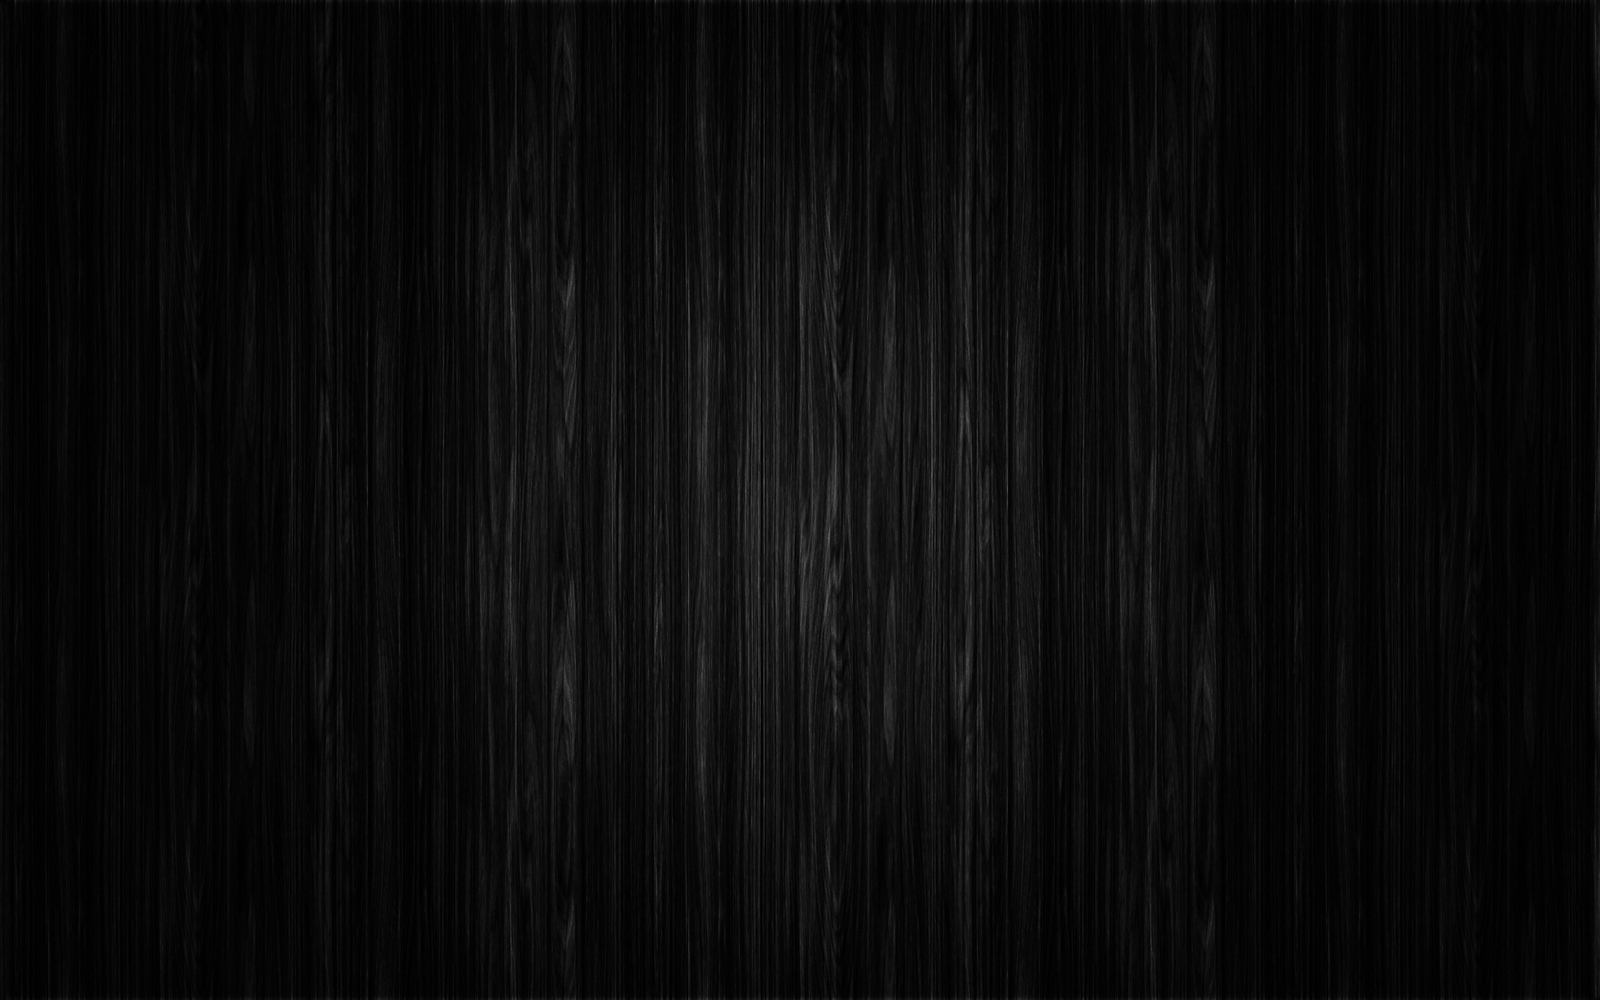 Black-Background-Wood-Clean-2560x1600-by-Freeman 2